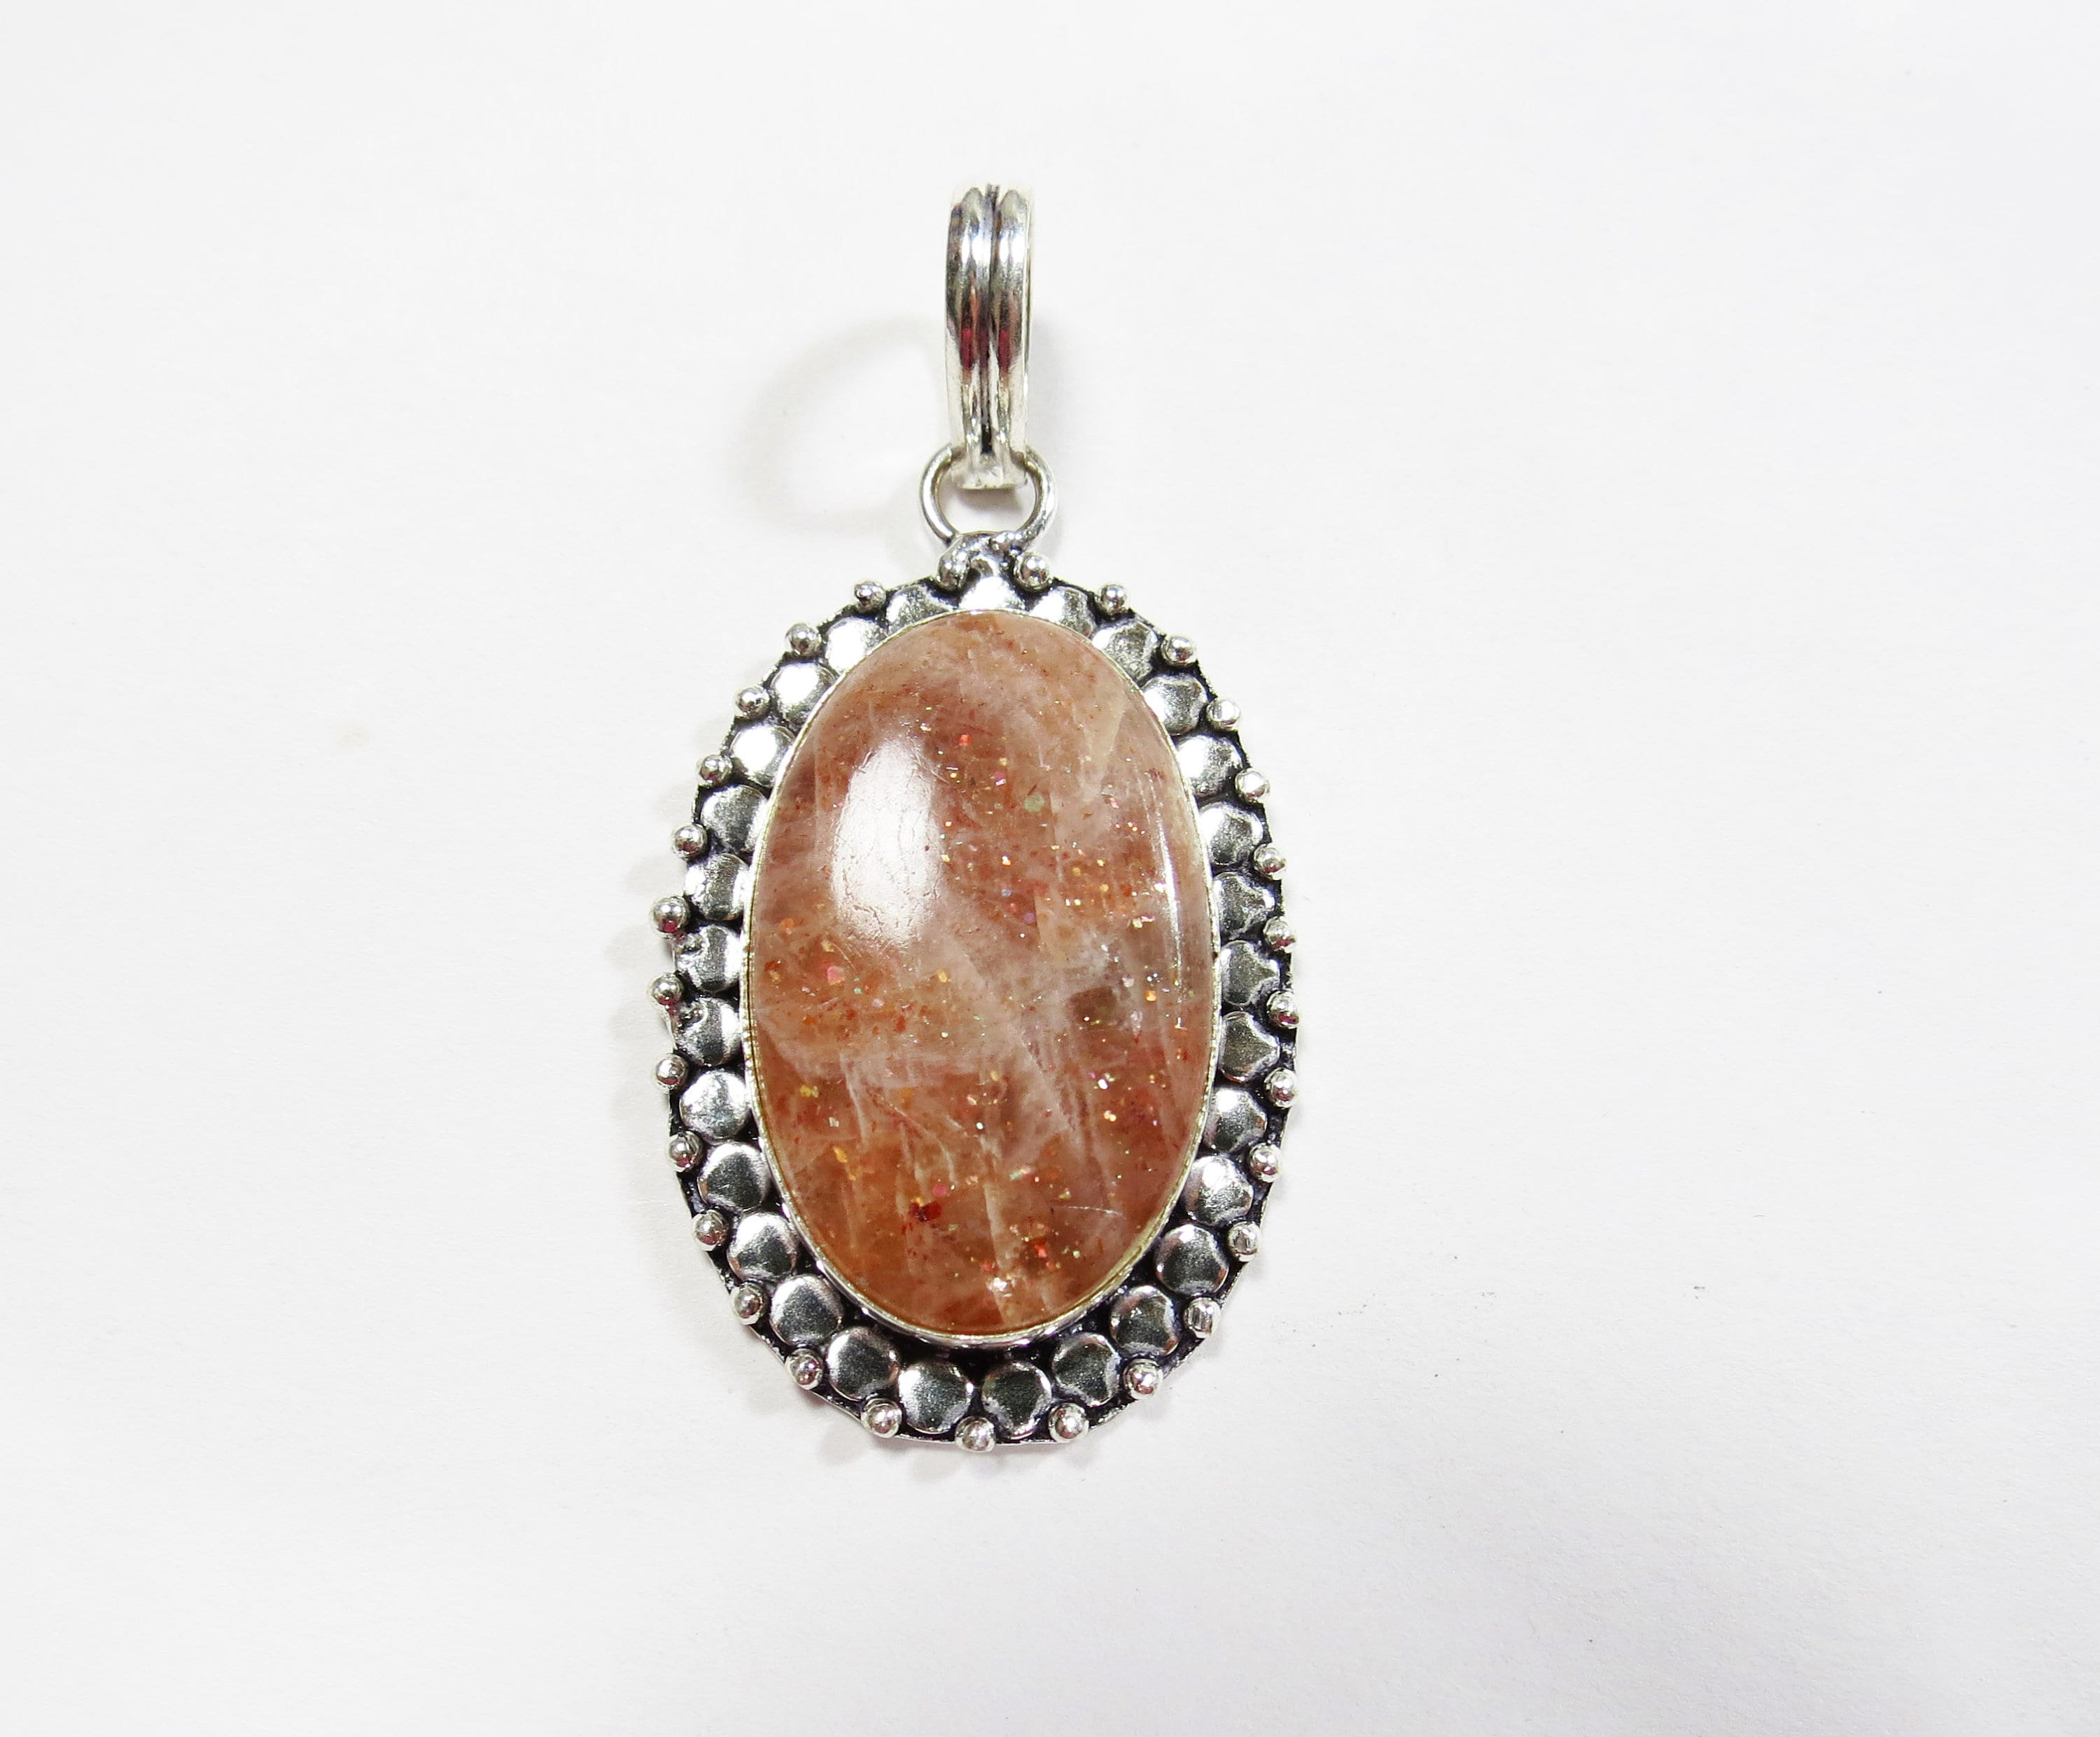 pendant loading reiki itm is ball balance sun sunstone chakra on gemstone stone top healing yoga image